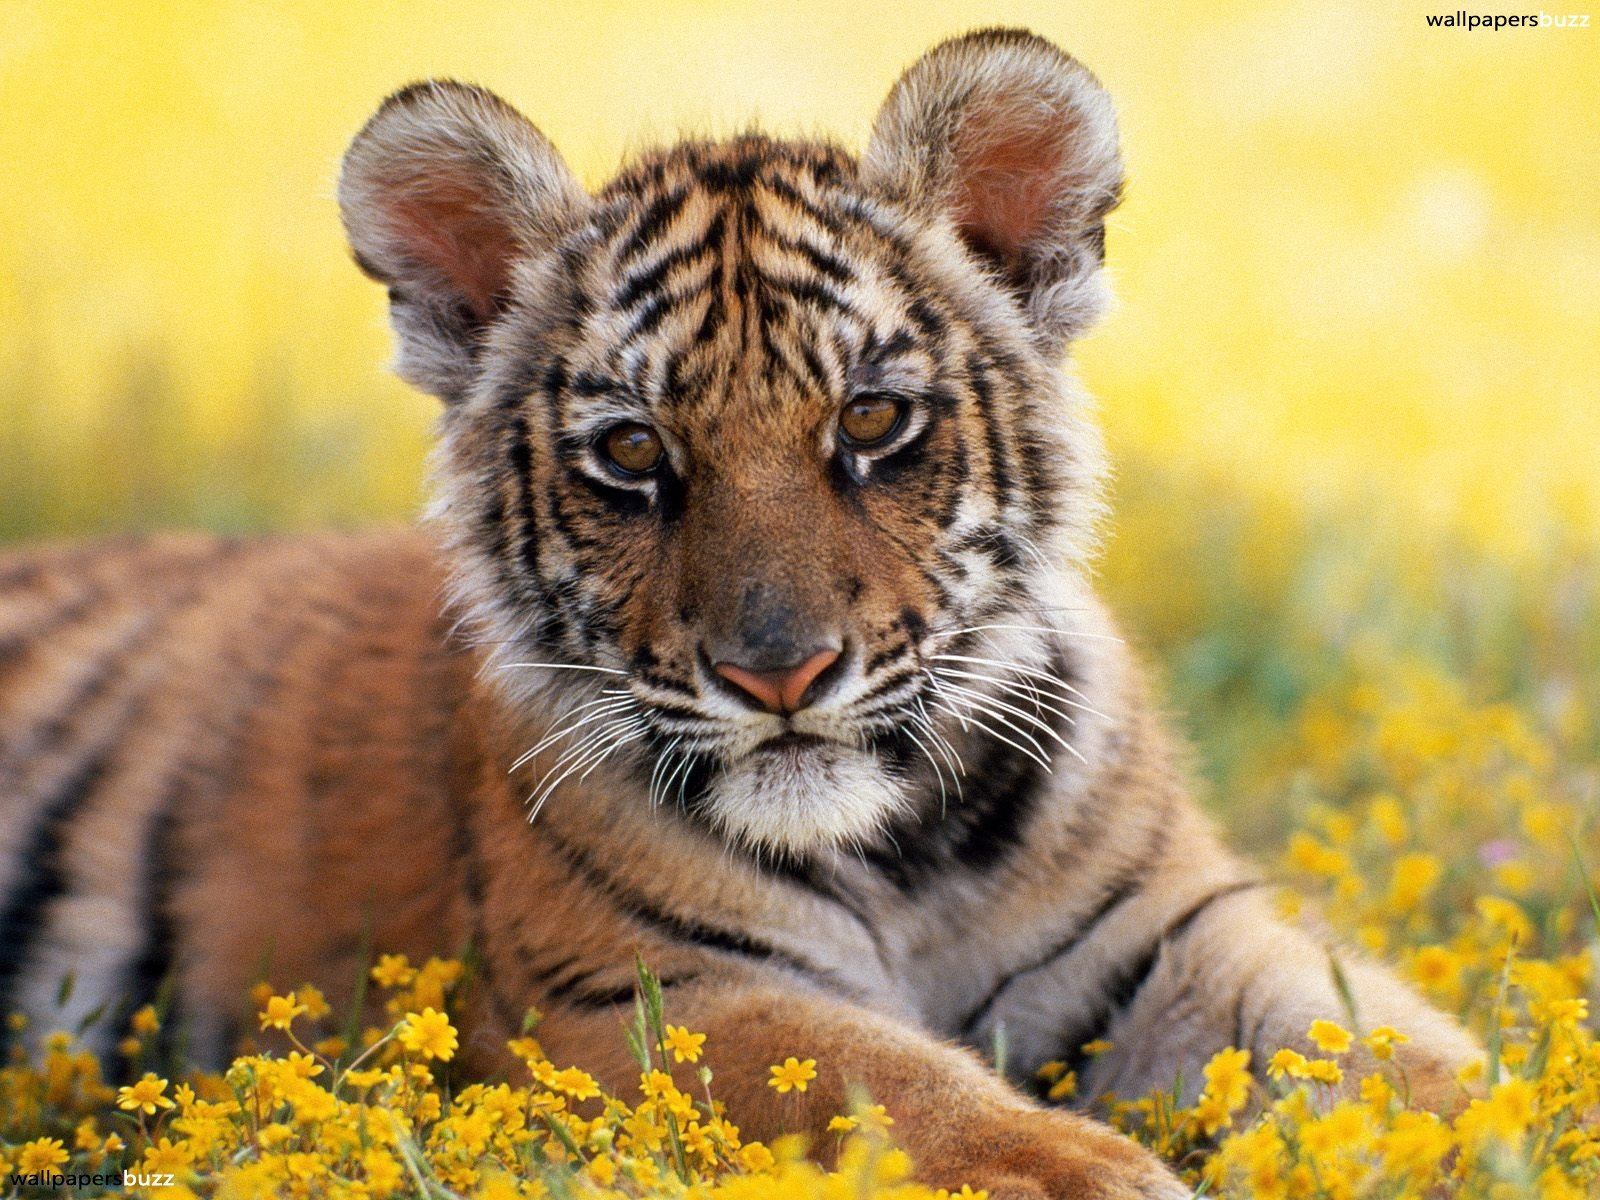 Little tigers images Baby Tigers HD wallpaper and background ...